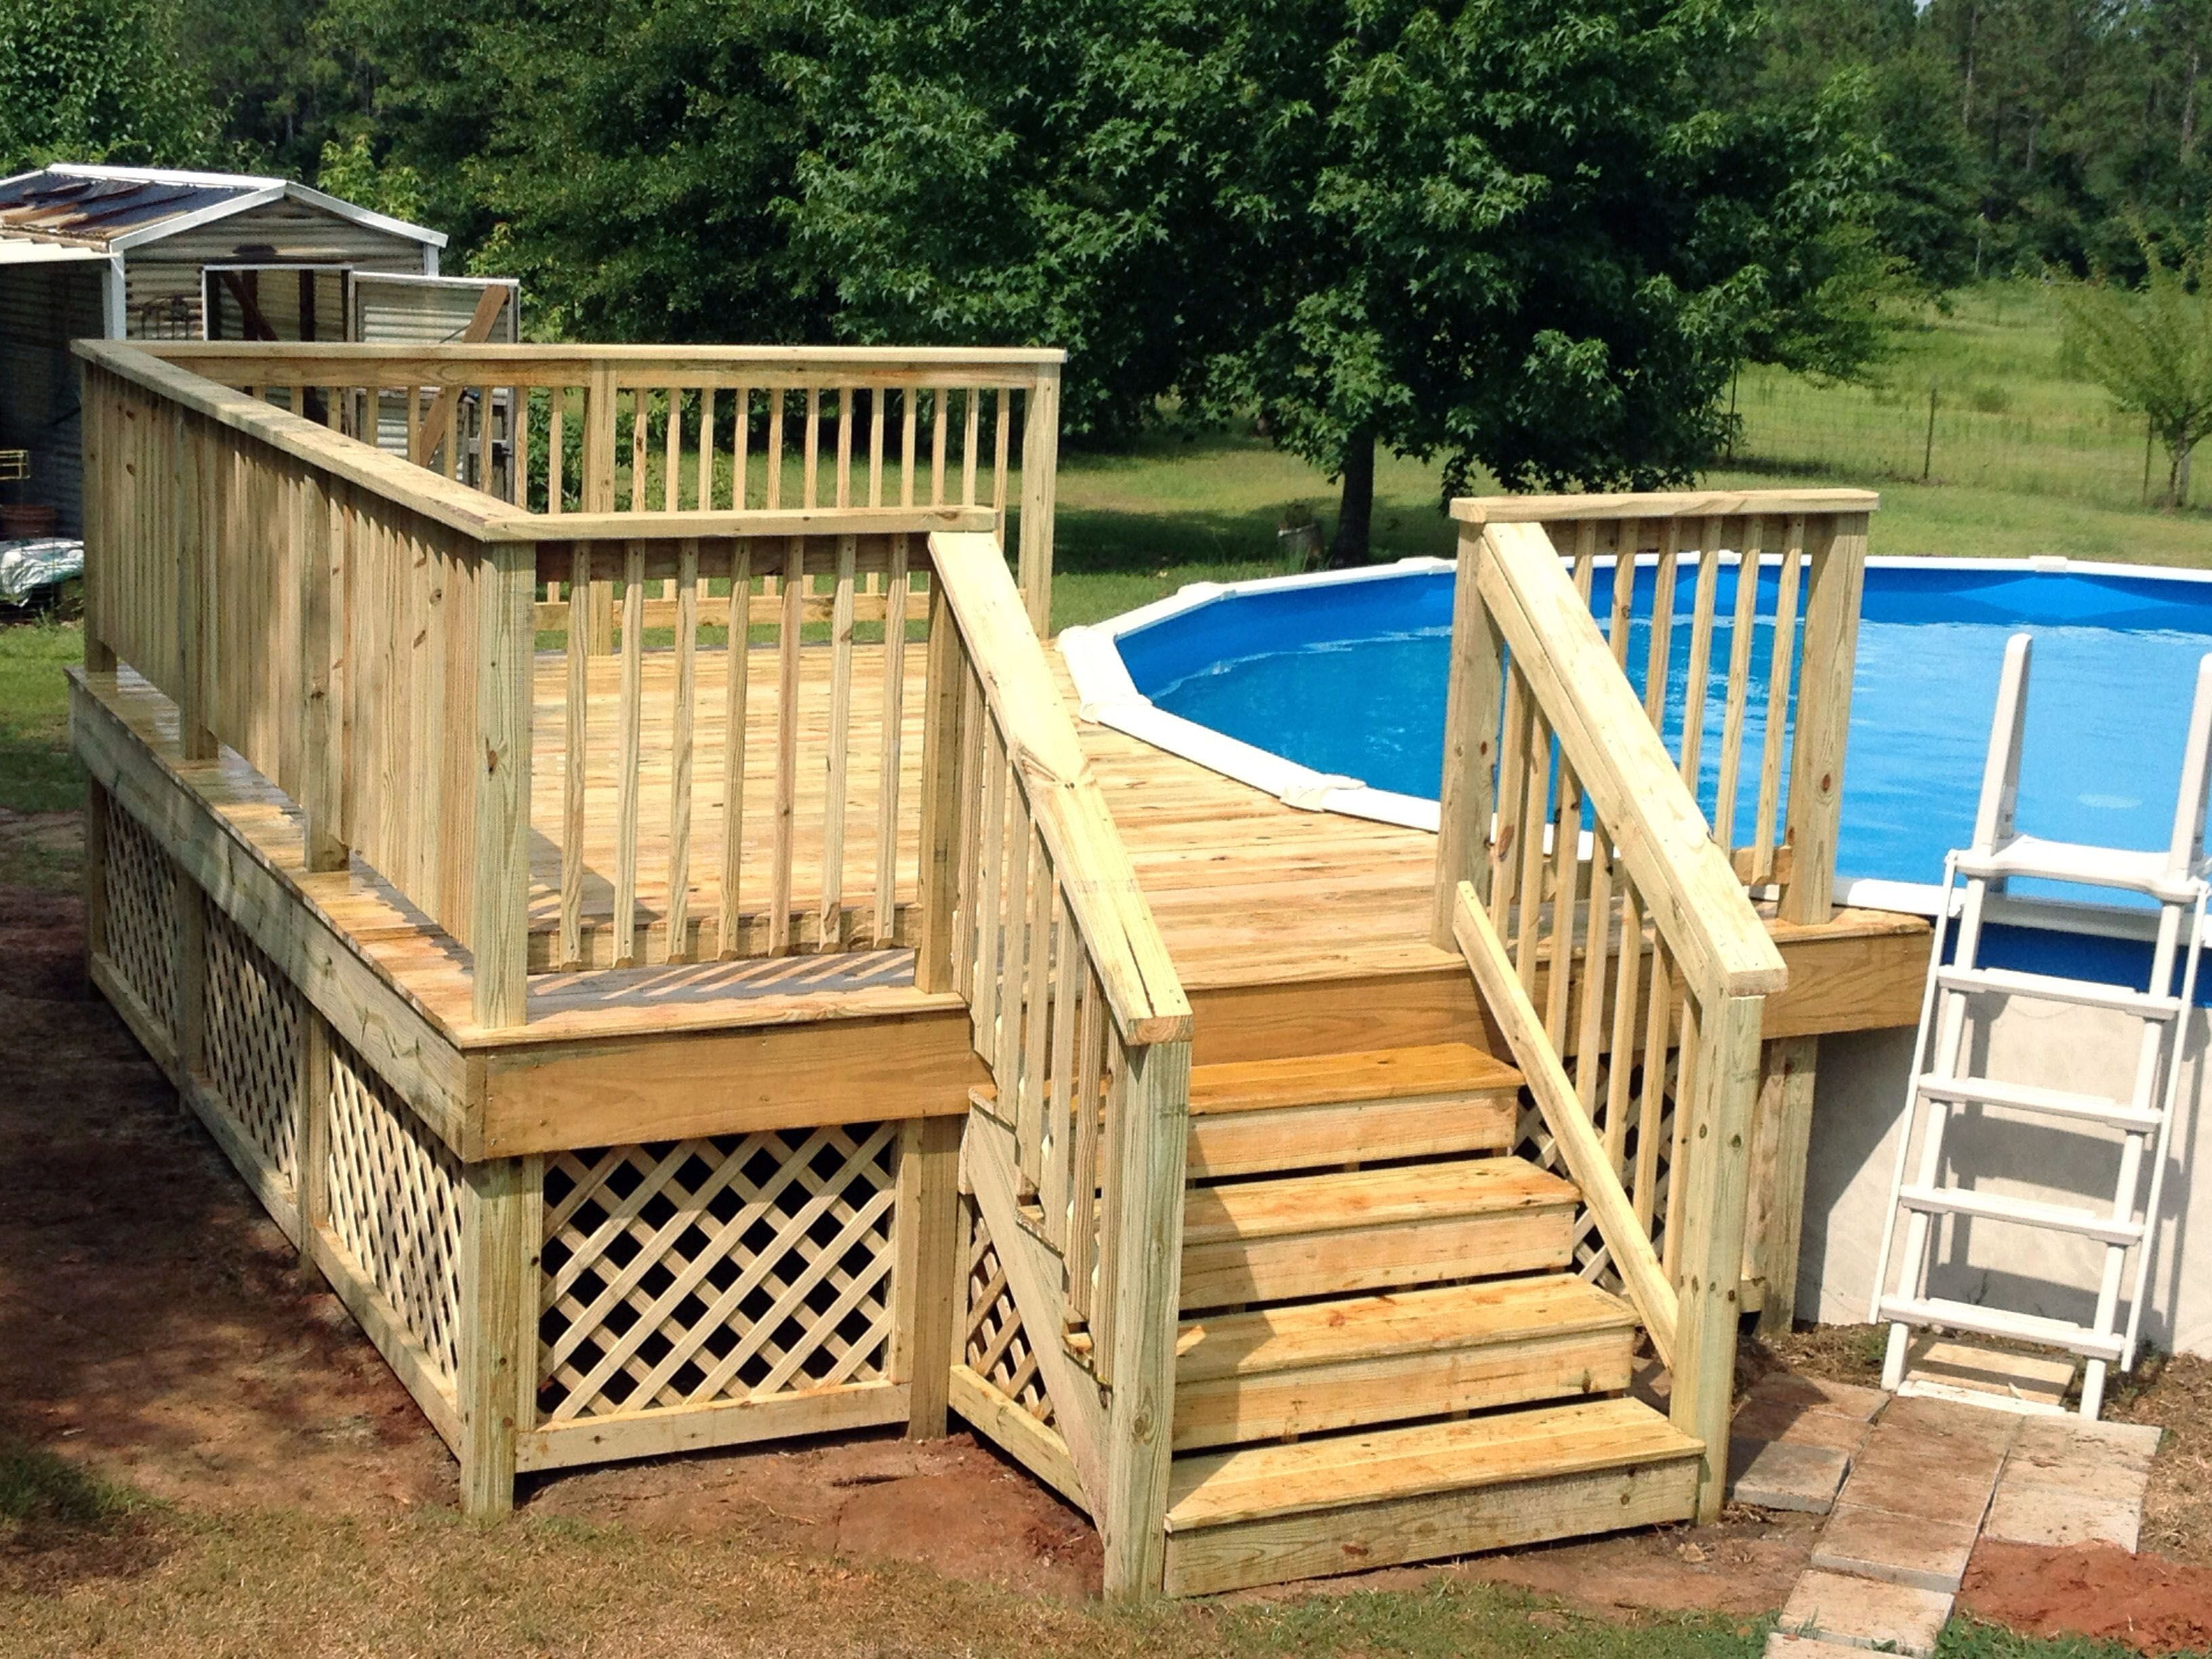 Pool Deck Ideas Pool Deck Plans Best Above Ground Pool Decks Around Pools